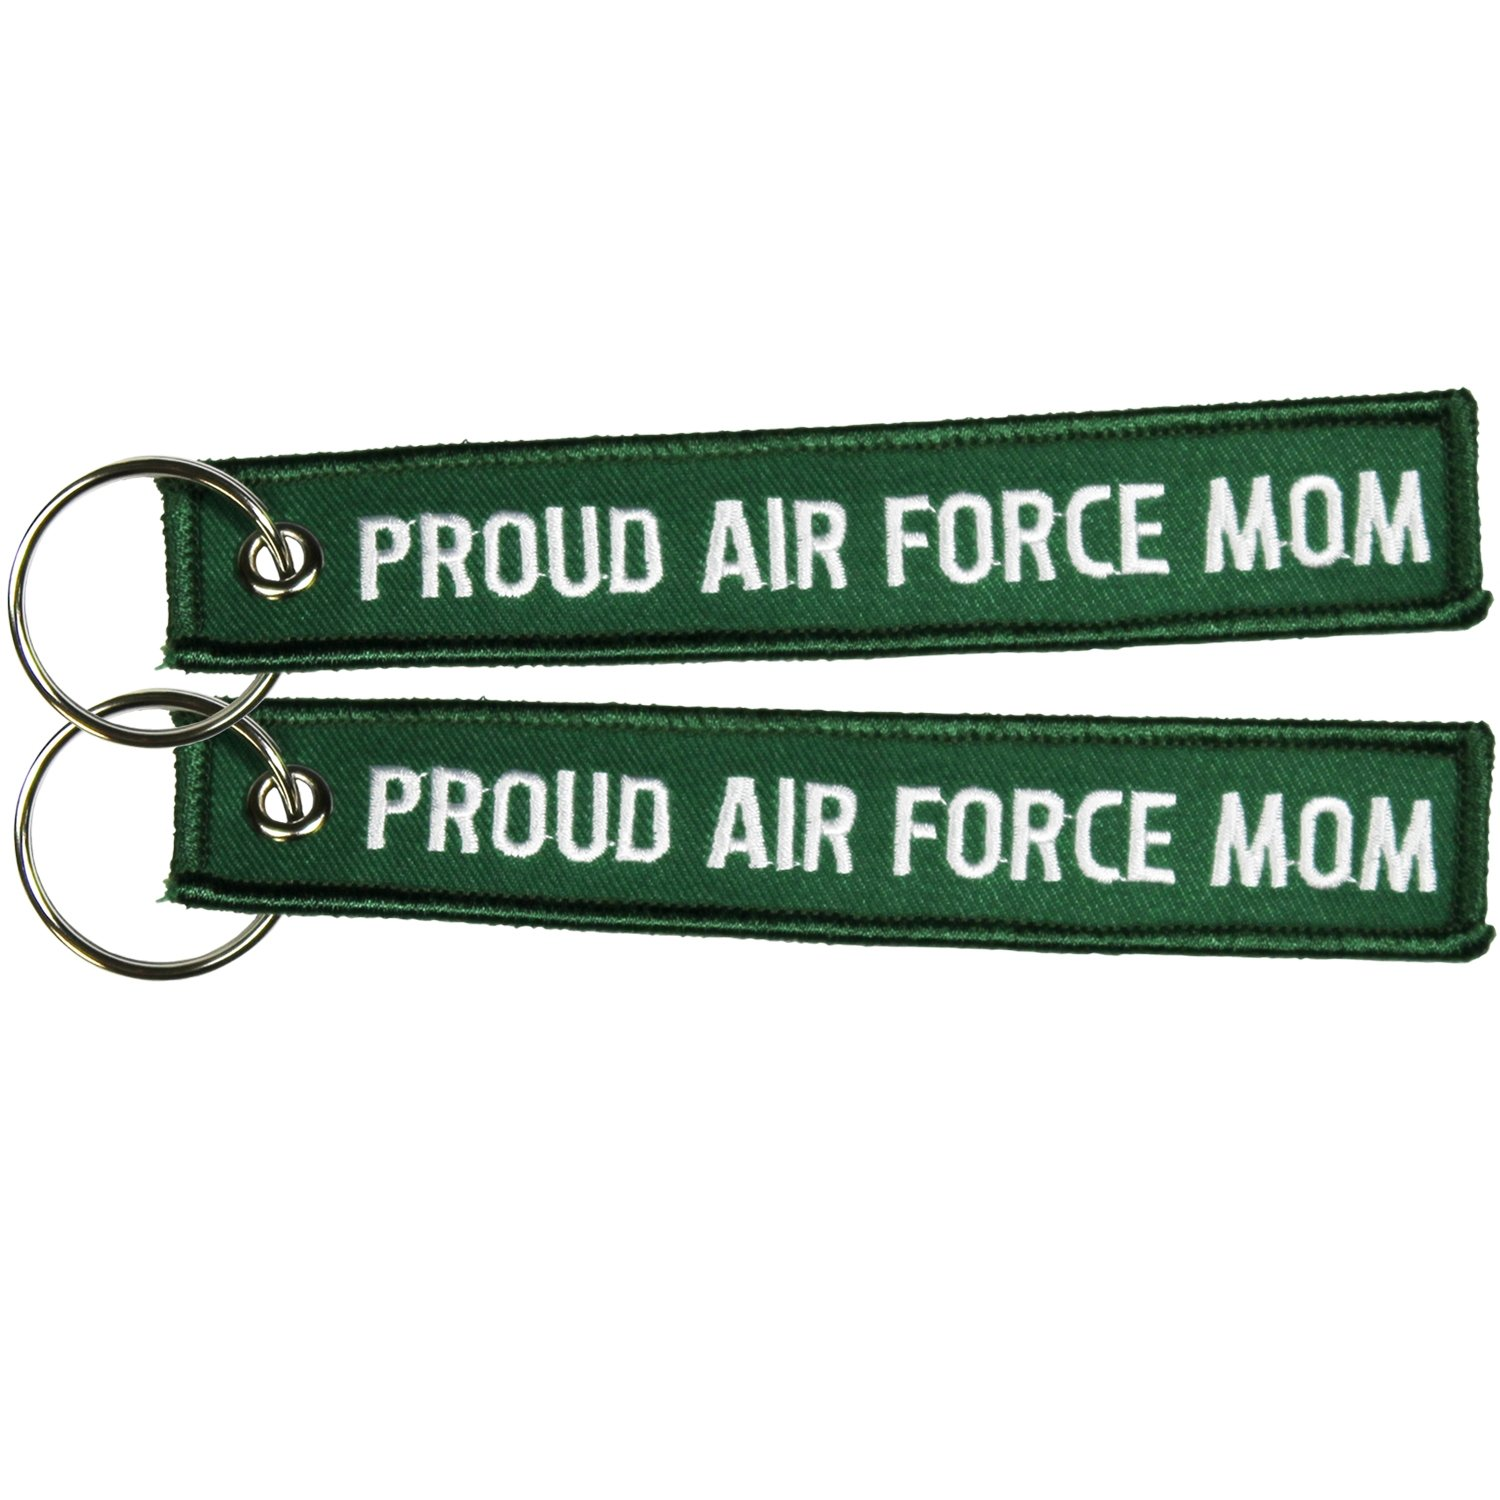 Green Eagle Crest Proud Air Force Mom Key Chain